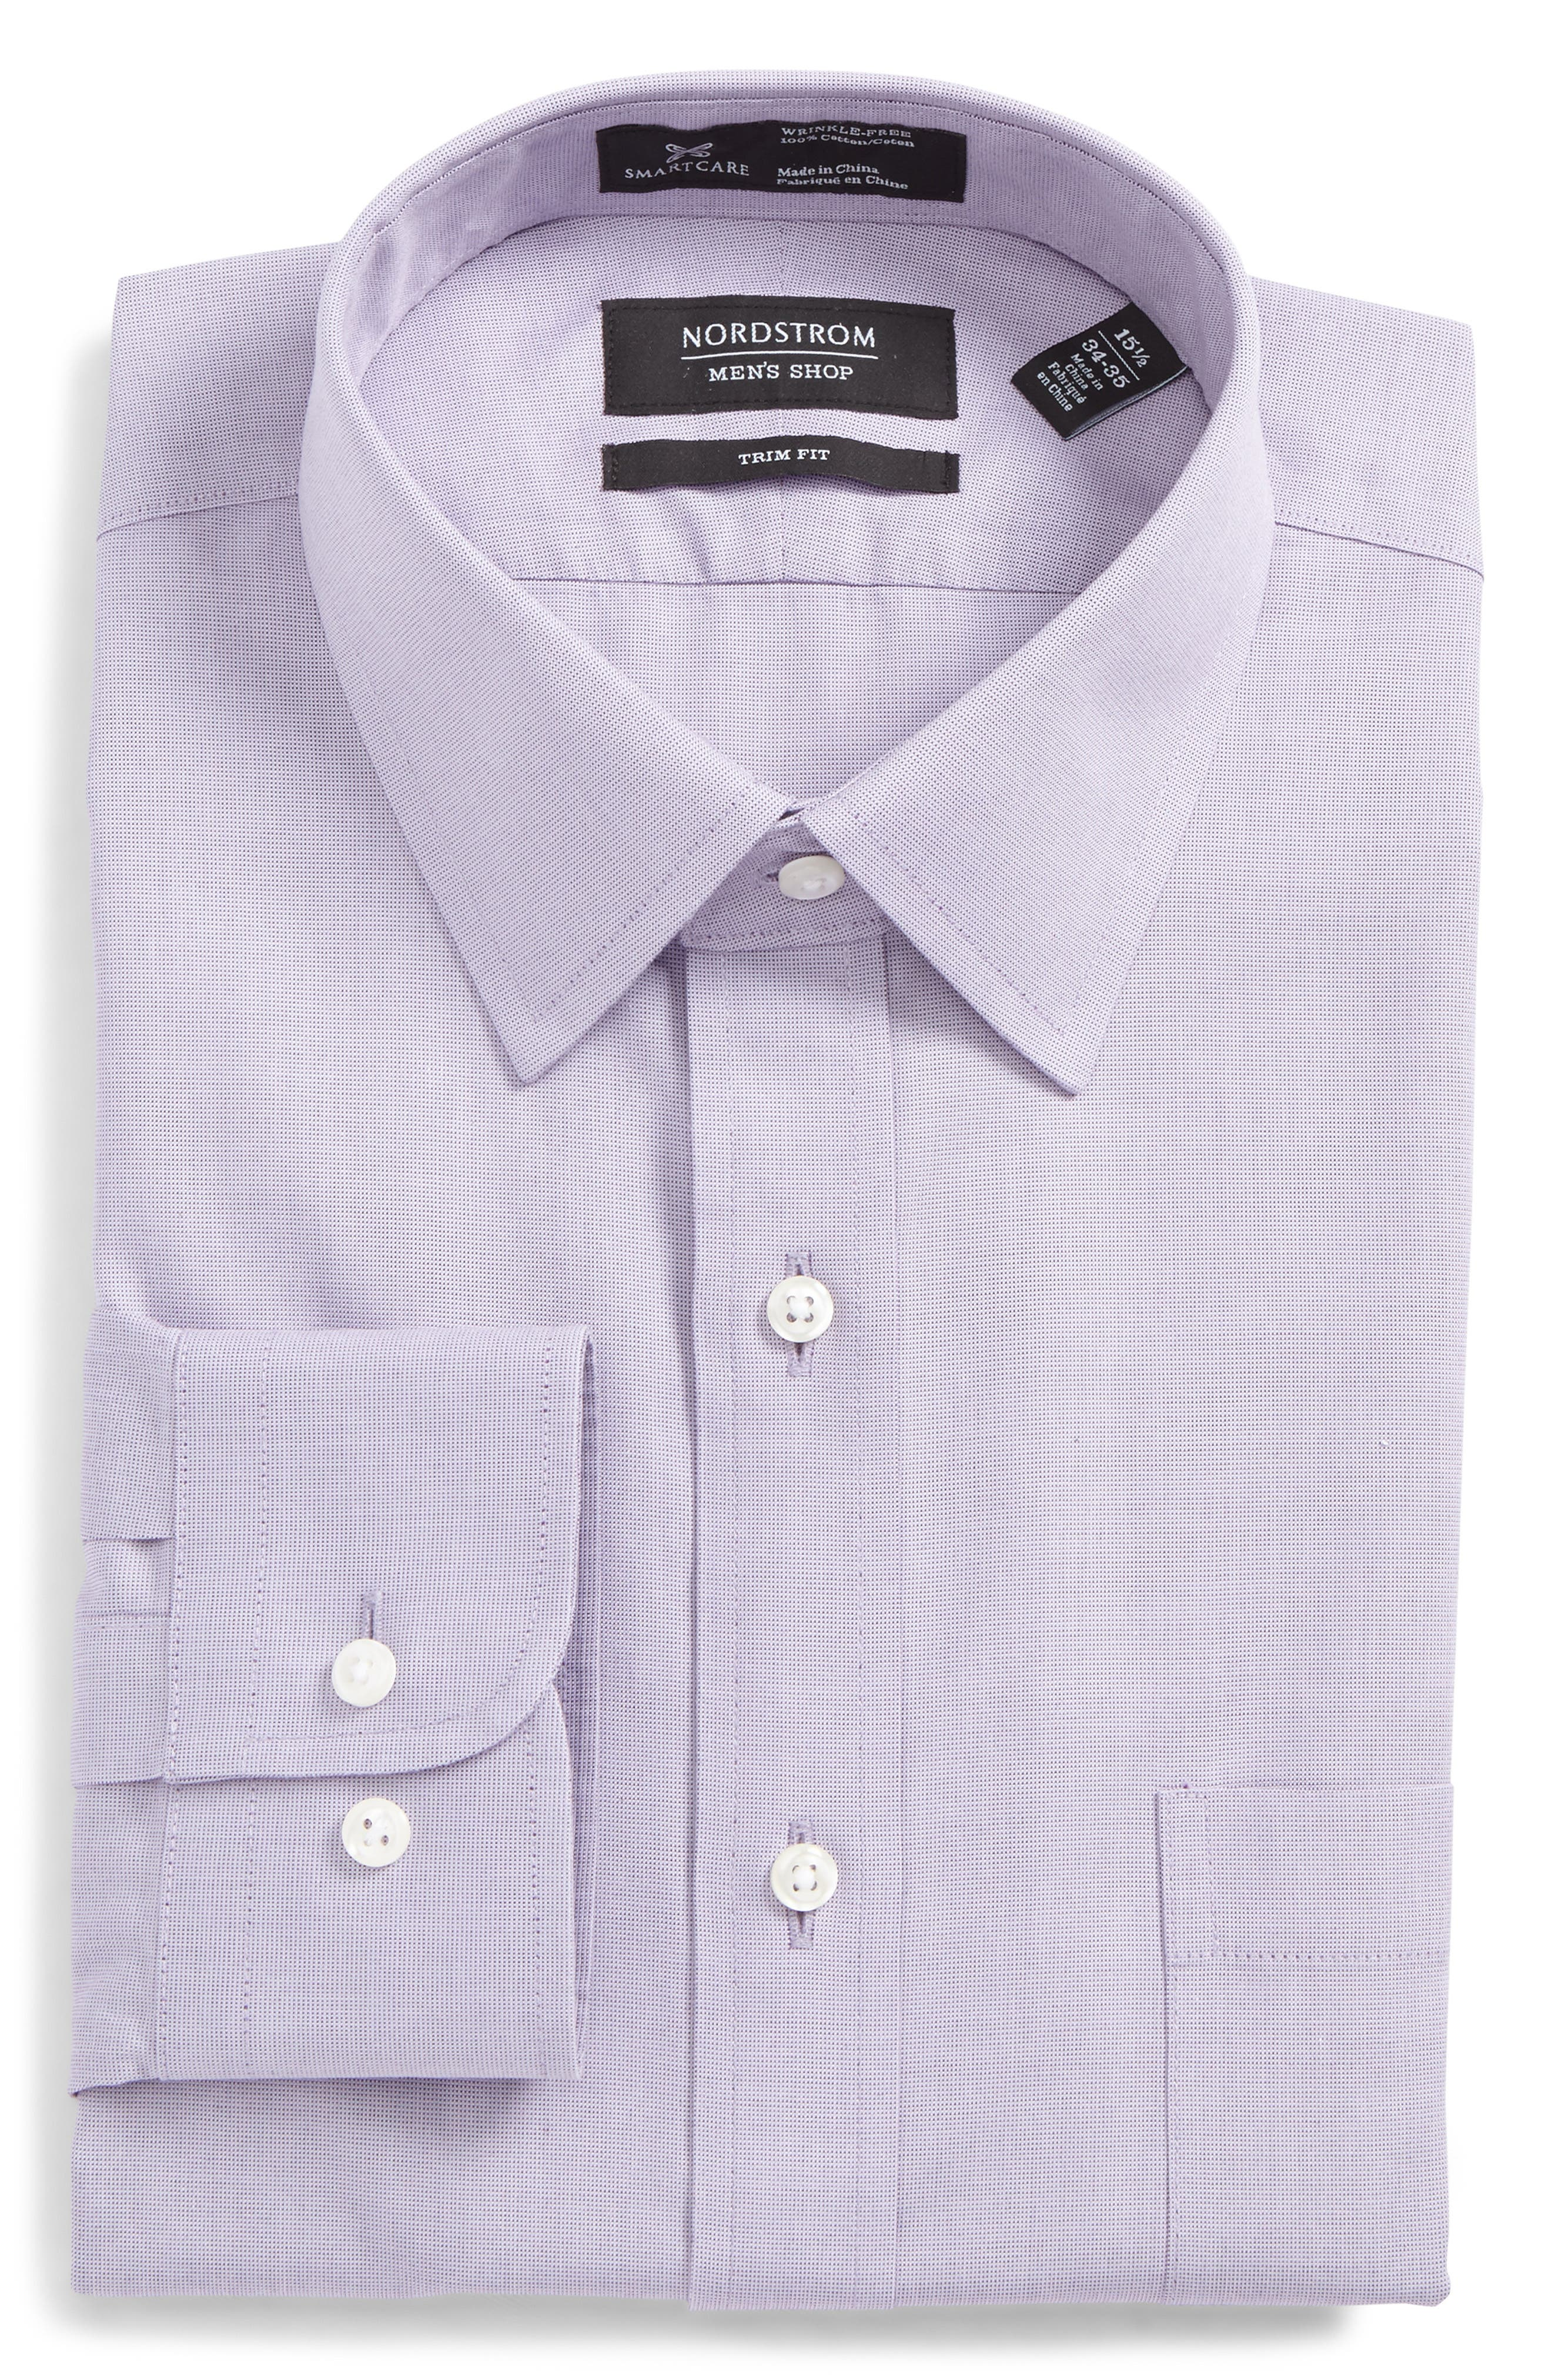 Nordstrom Shop Smartcare(TM) Trim Fit Solid Dress Shirt, 5 34/35 - Purple